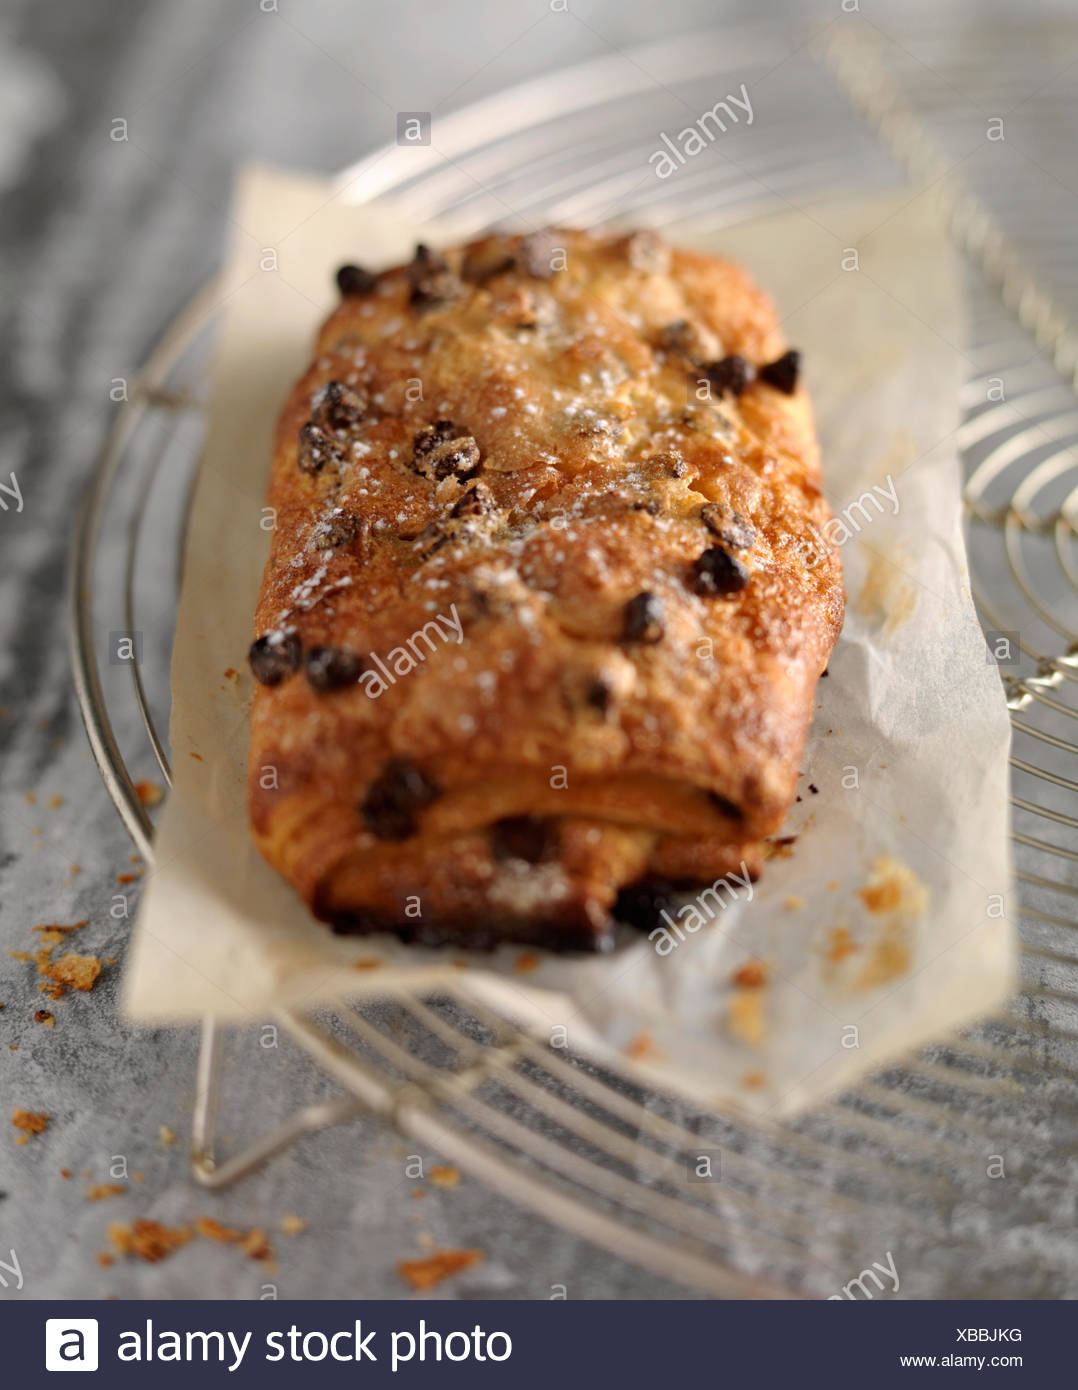 Pain au chocolat with extra chocolate chips - Stock Image